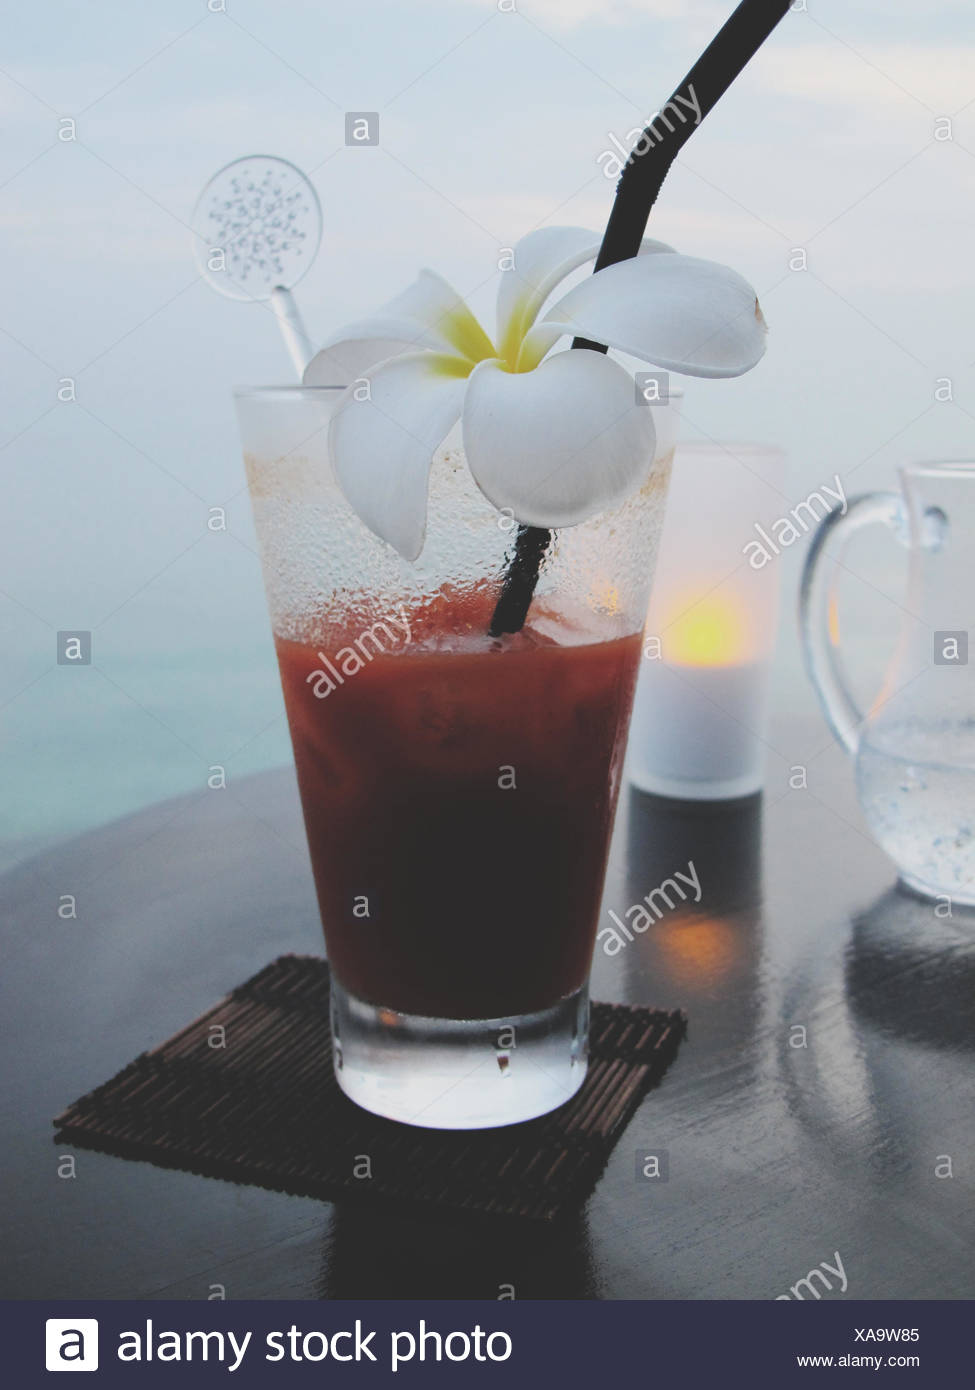 Fresh Margarita Decorated With White Flower - Stock Image